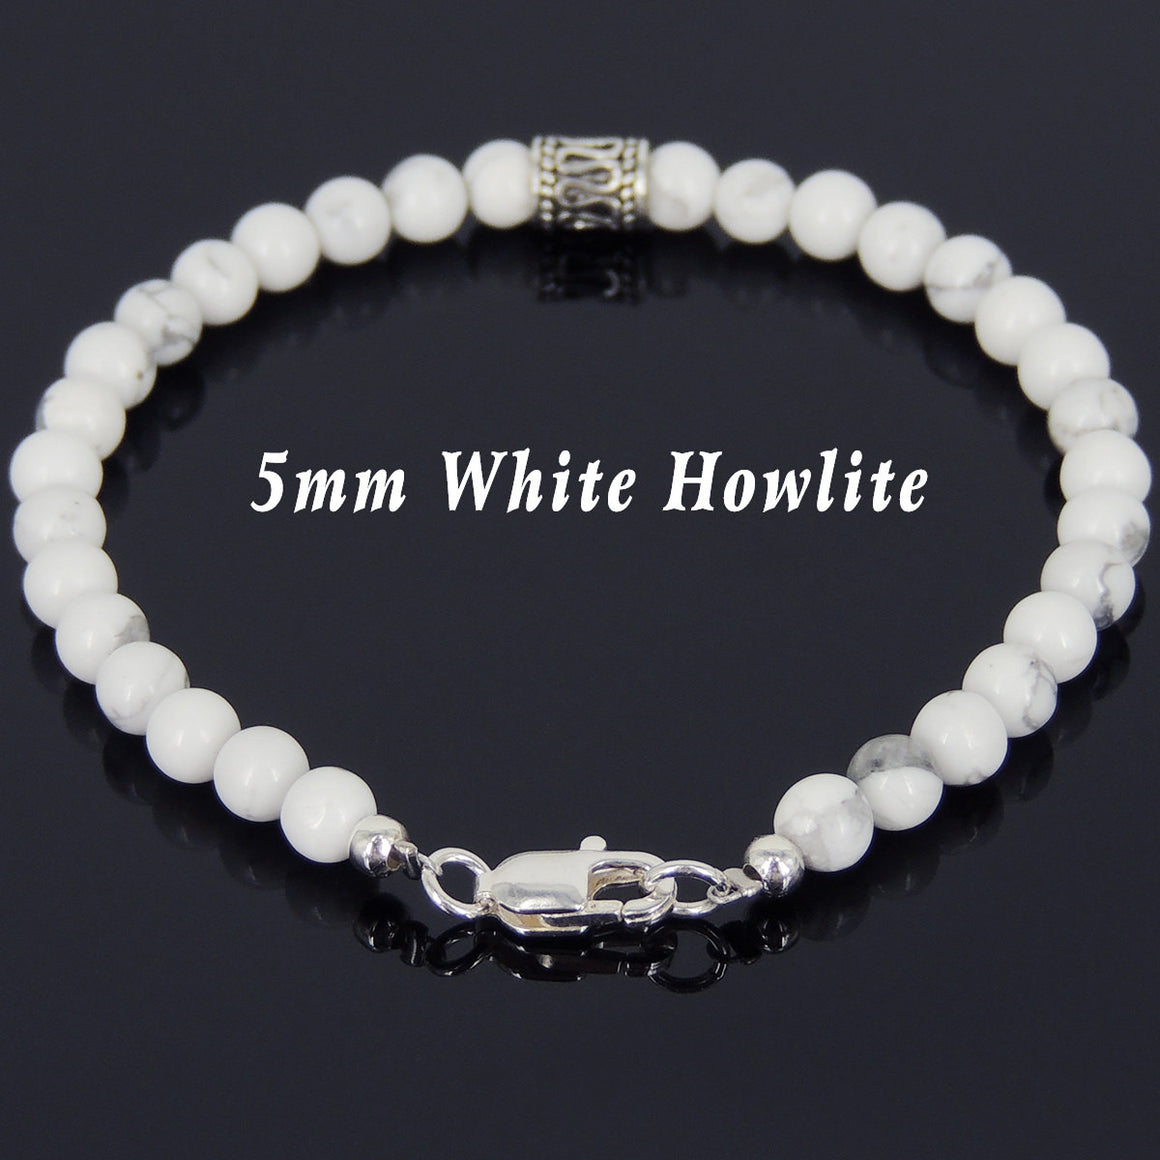 5mm White Howlite Healing Gemstone Bracelet with S925 Sterling Silver Artisan Barrel Bead & Clasp - Handmade by Gem & Silver BR592